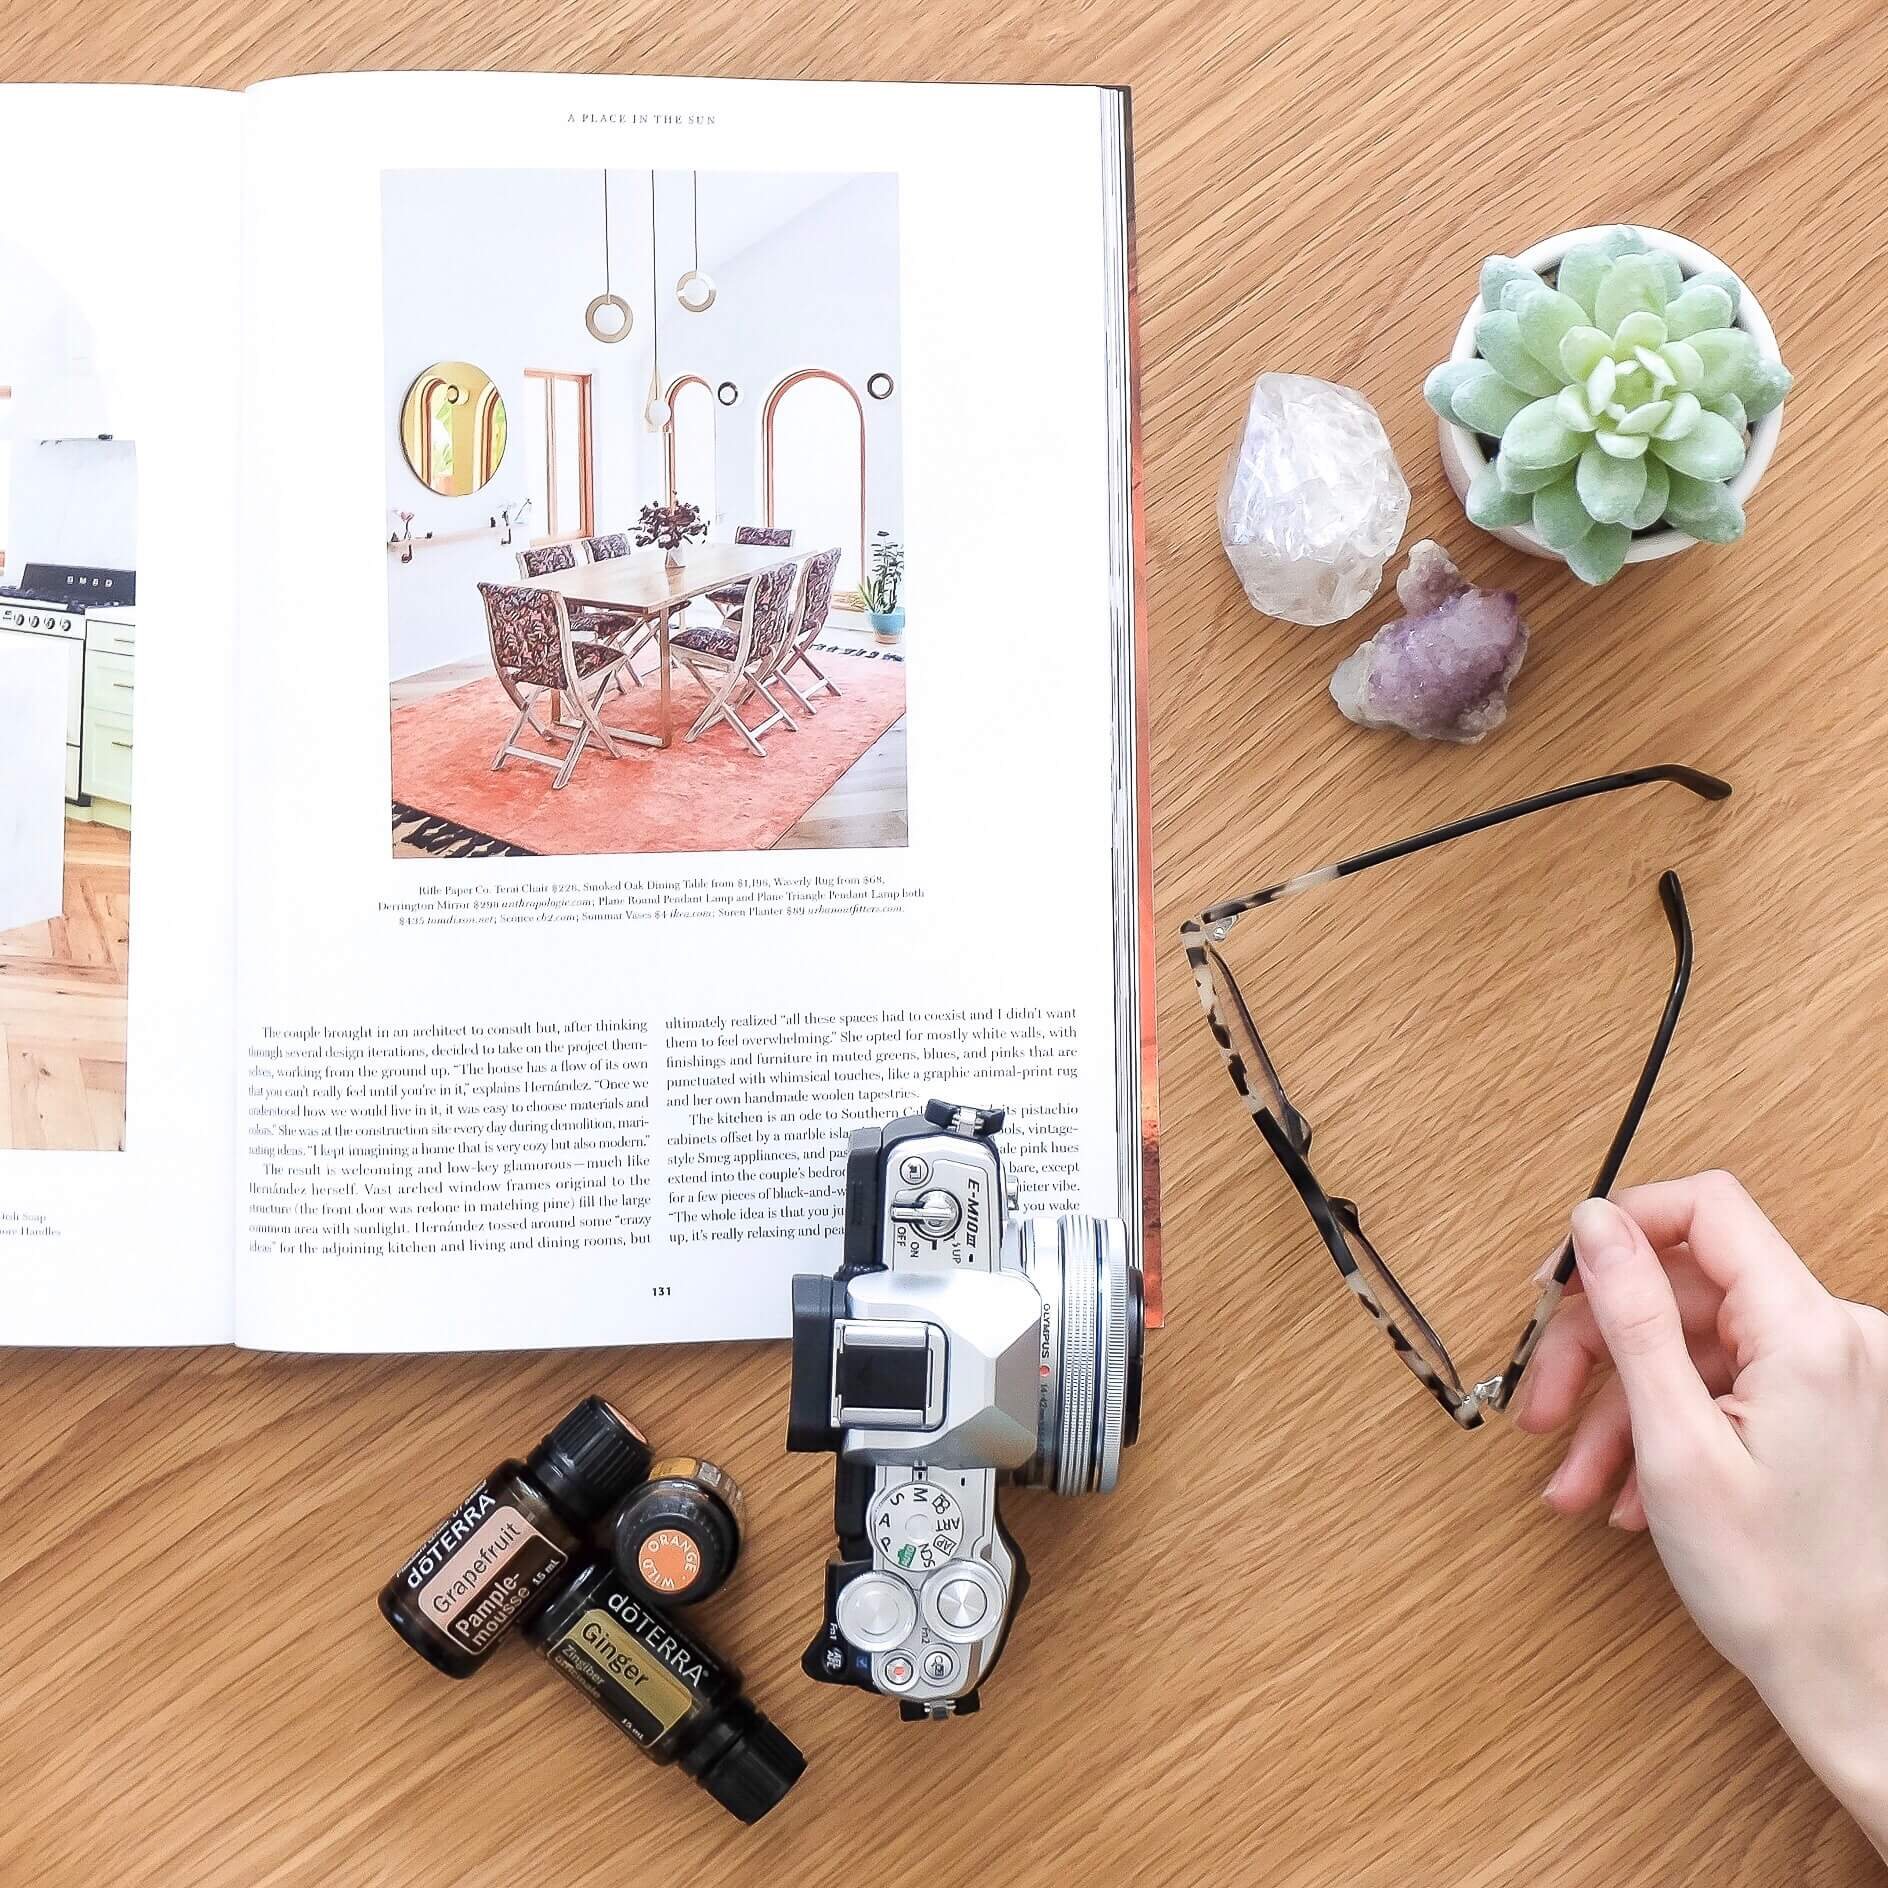 A lovely page from a Dwell magazine, a few of my crystals, a fake succulent, my own glasses and camera (and hand!), and one of my favourite essential oil diffuser blends.